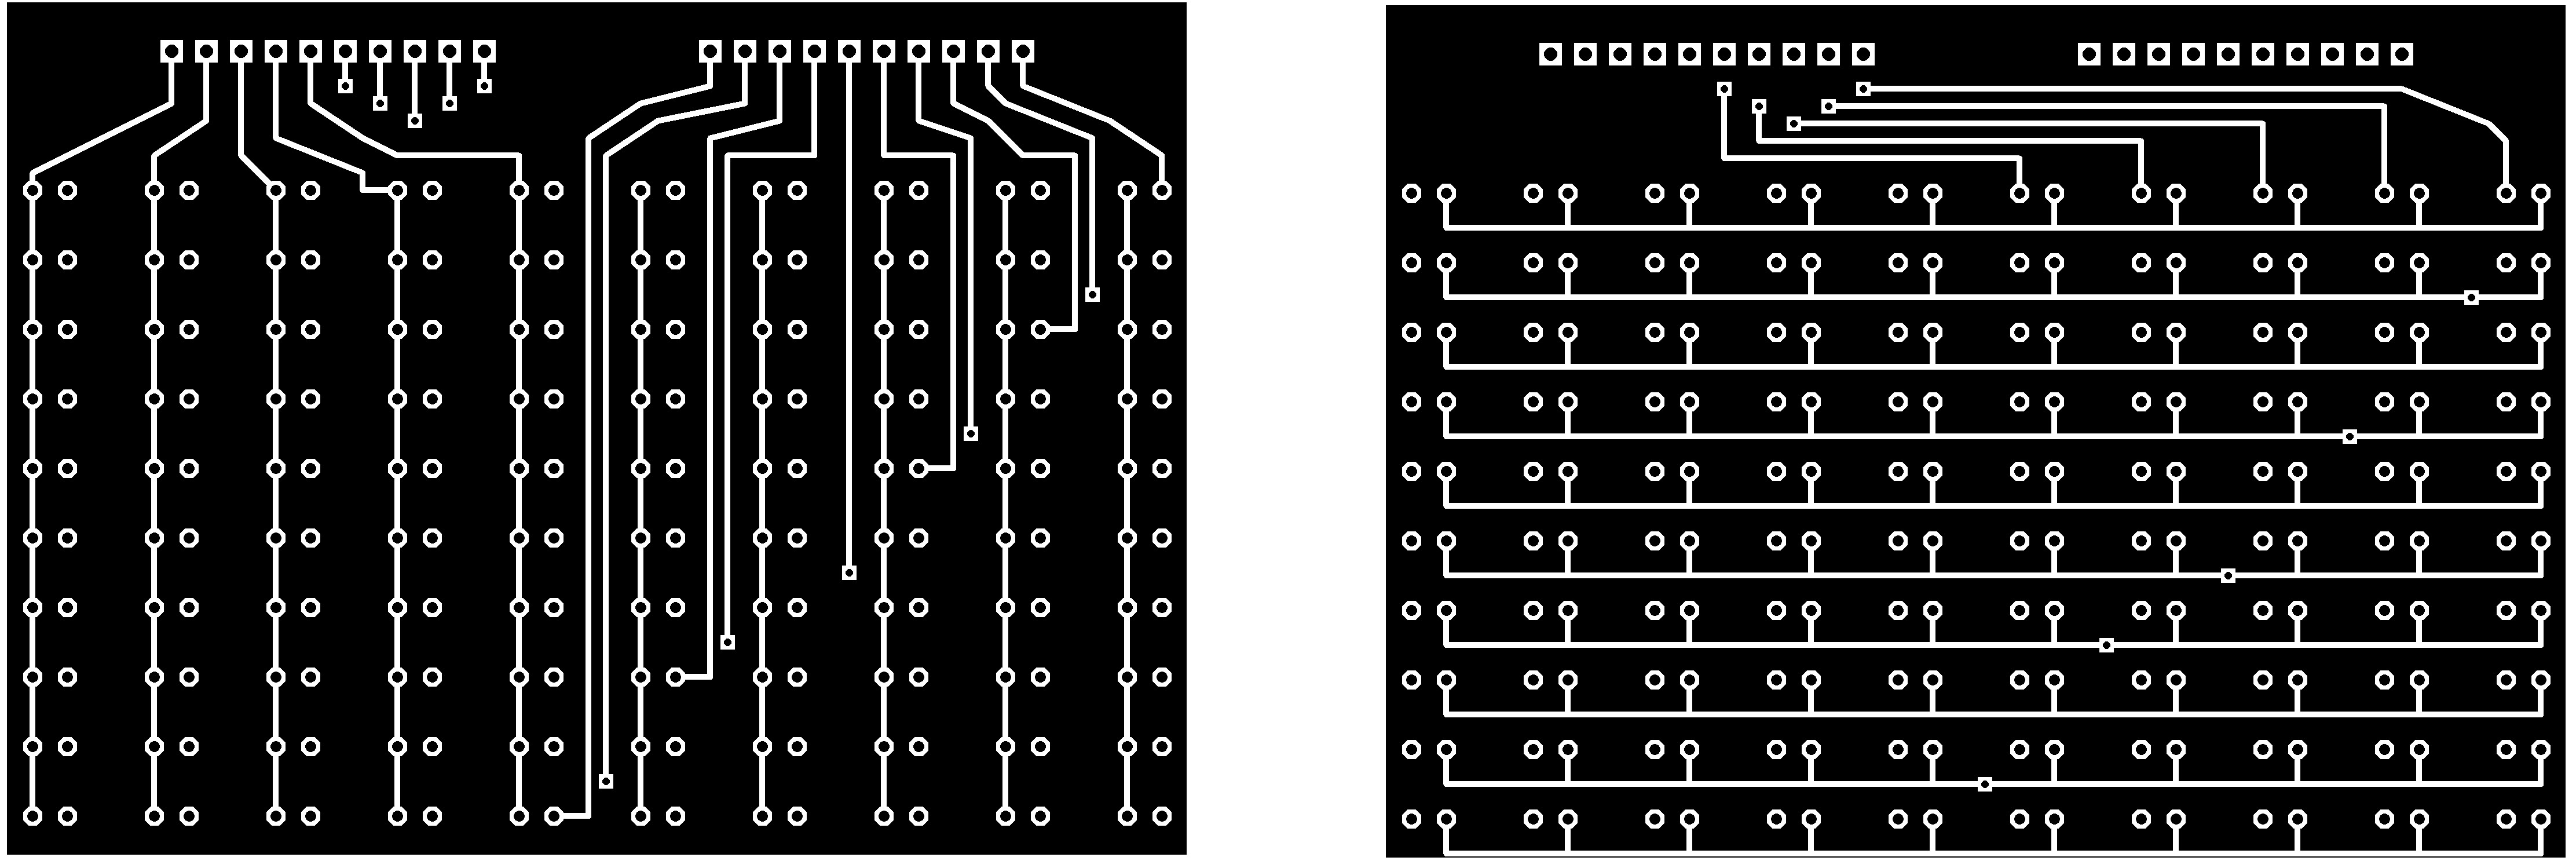 Index Also Lifier Circuit Diagram 10 Band Graphic Equalizer The Merged Top And Bottom Layer Of Pcb With Leds Is Shown Below Connectors X Y In Schematic Electrical Signal Need To Be